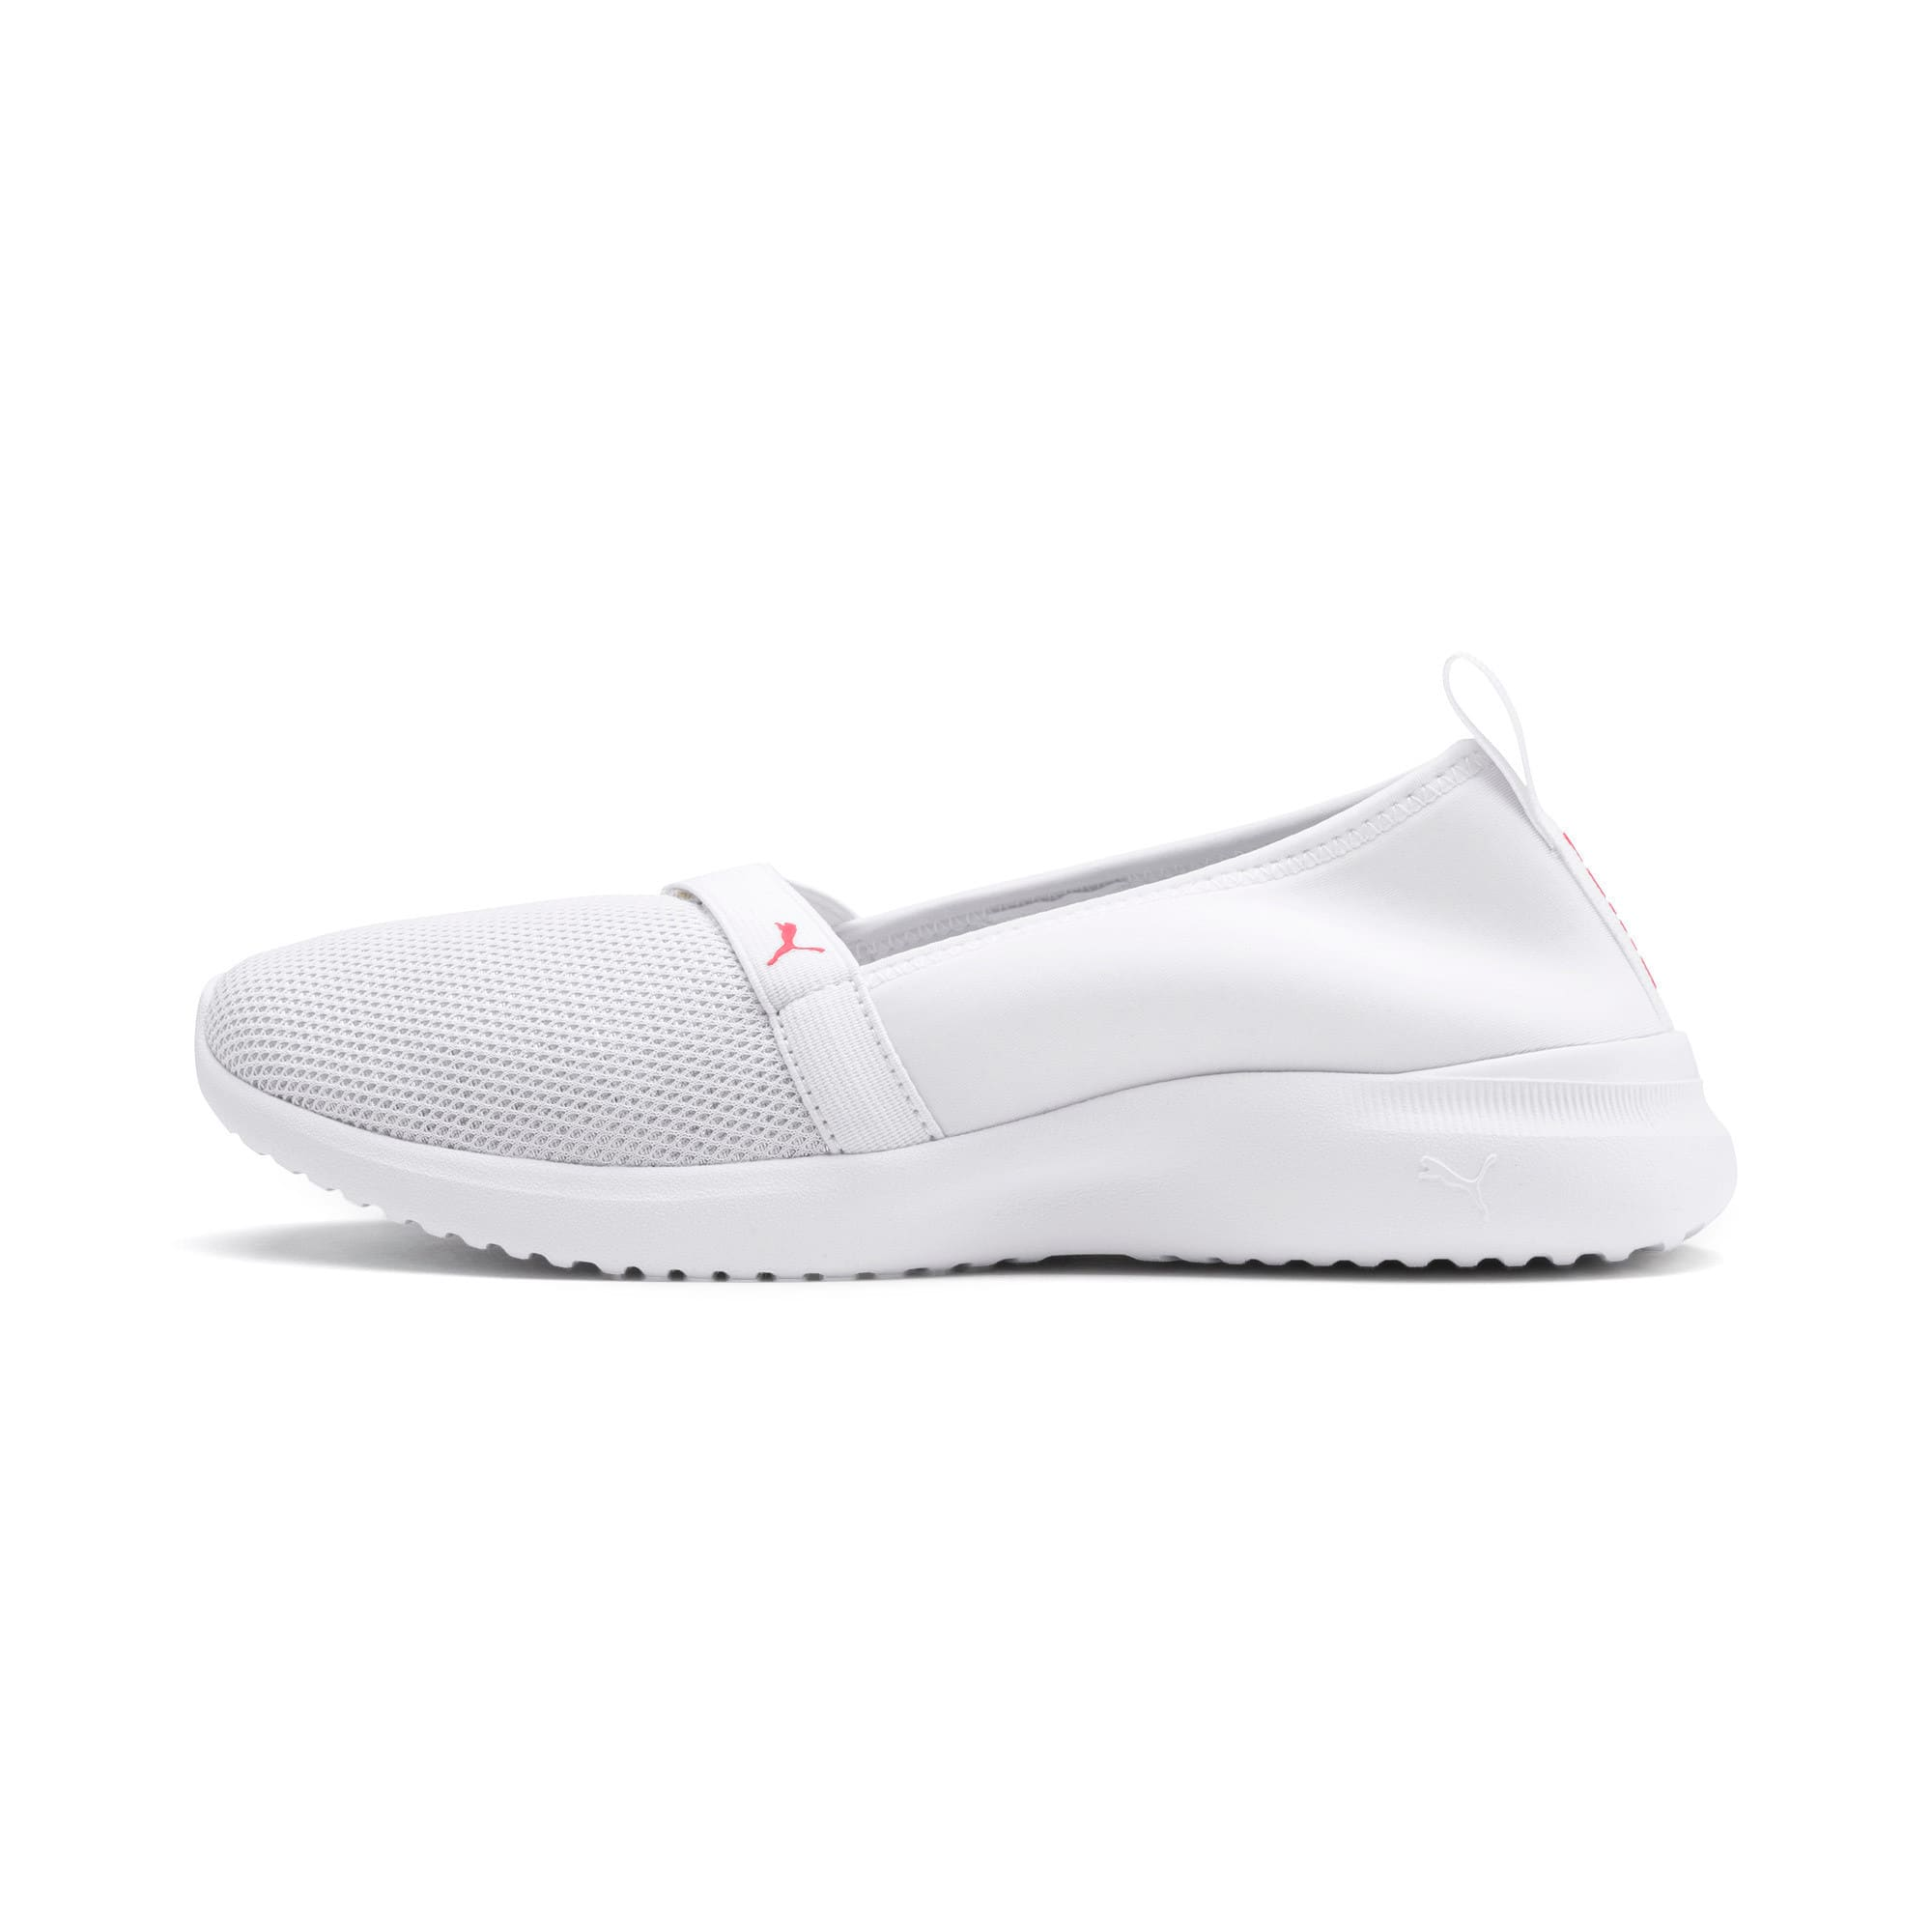 Thumbnail 1 of Adelina Sparkle Women's Trainers, Puma White-Pink Alert, medium-IND